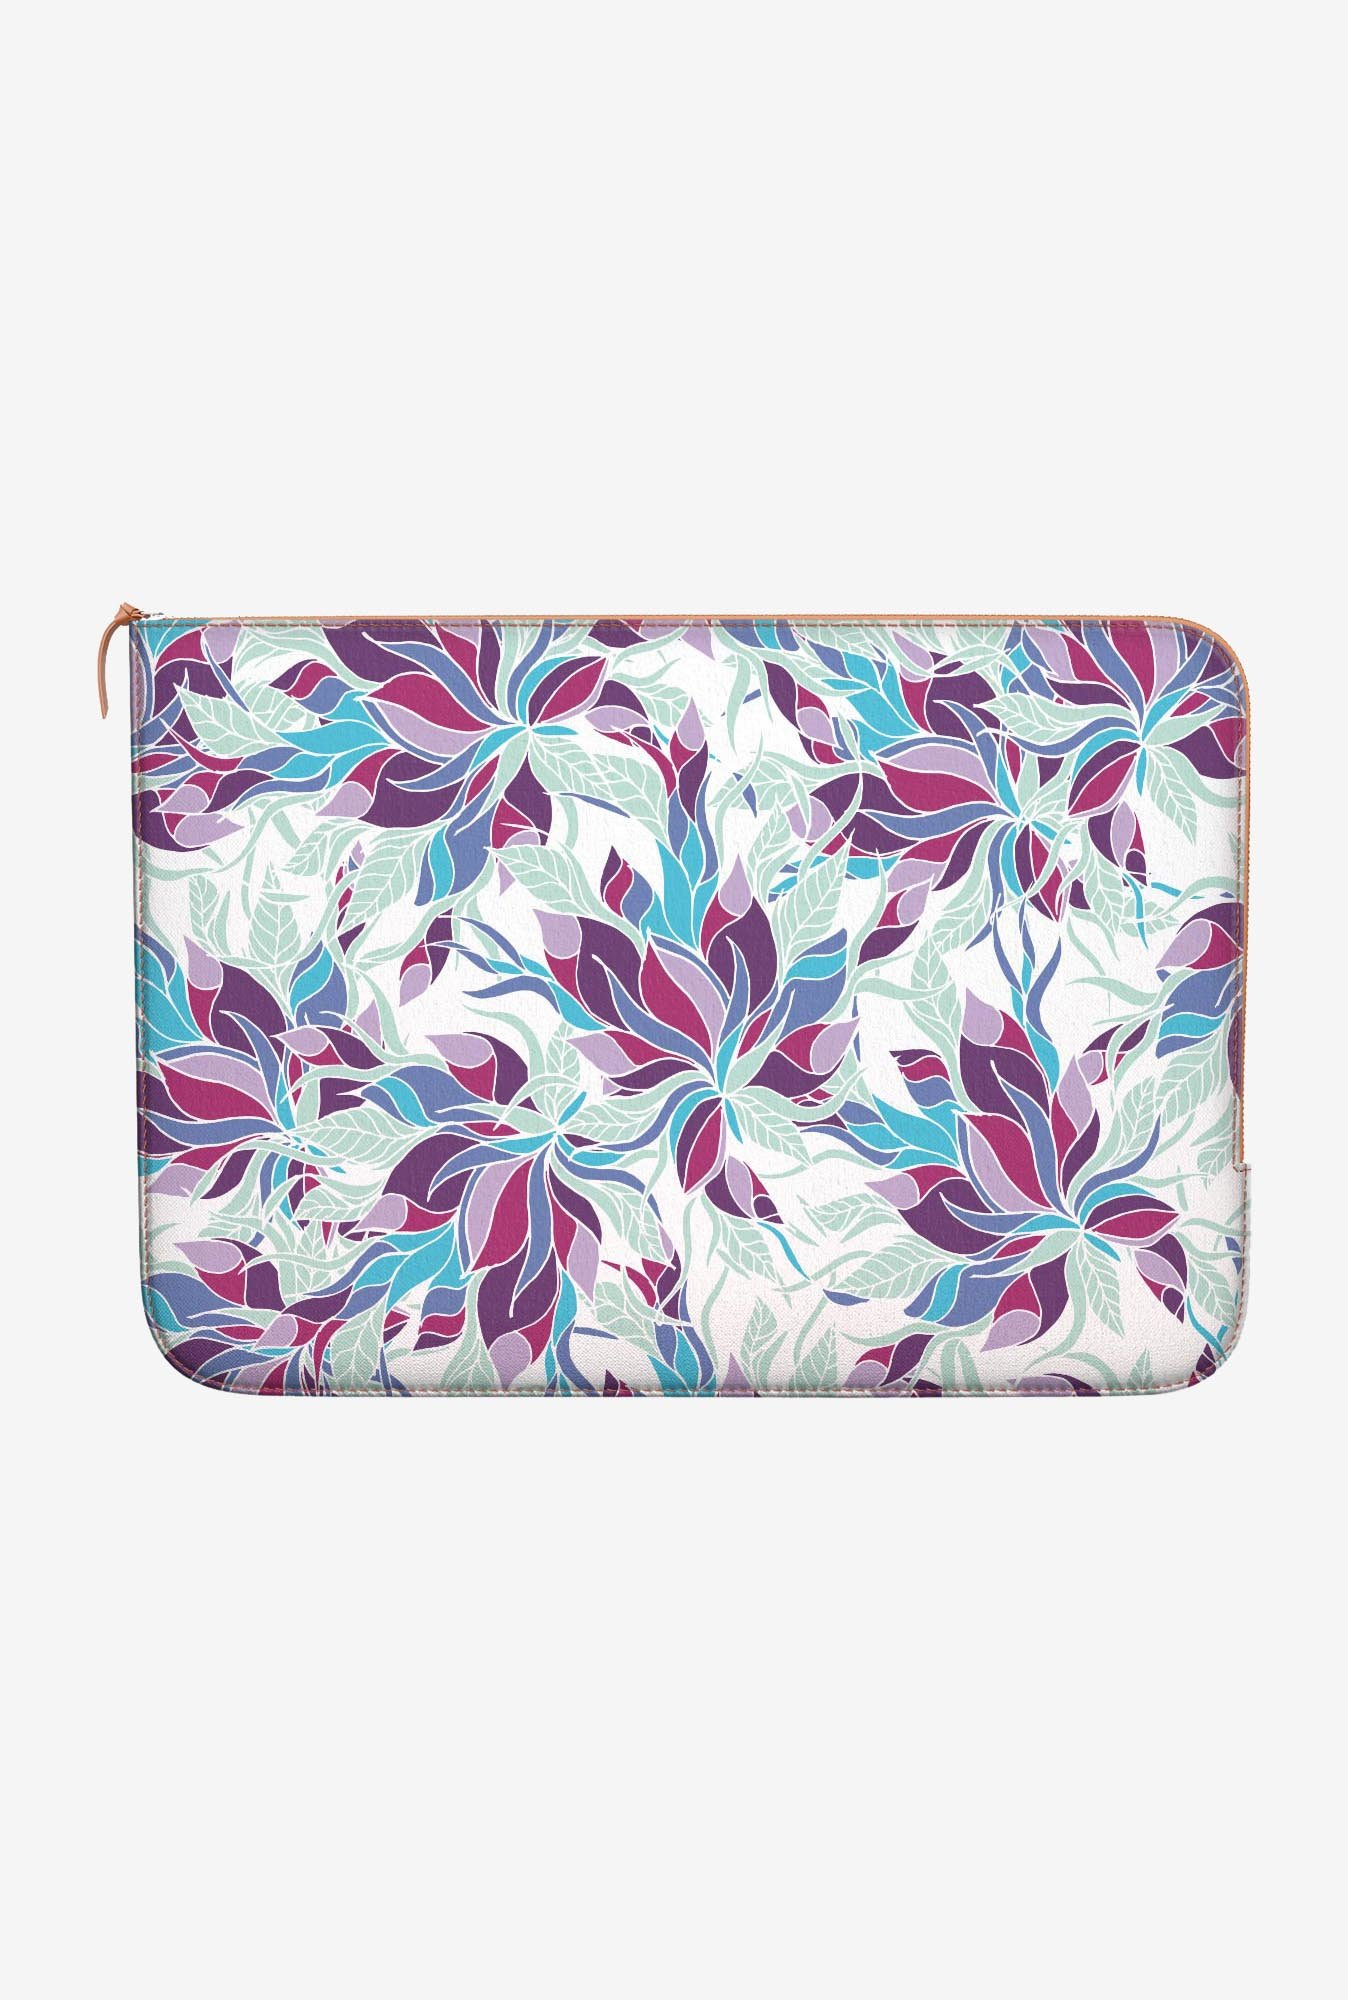 DailyObjects Fall Floral MacBook Pro 15 Zippered Sleeve